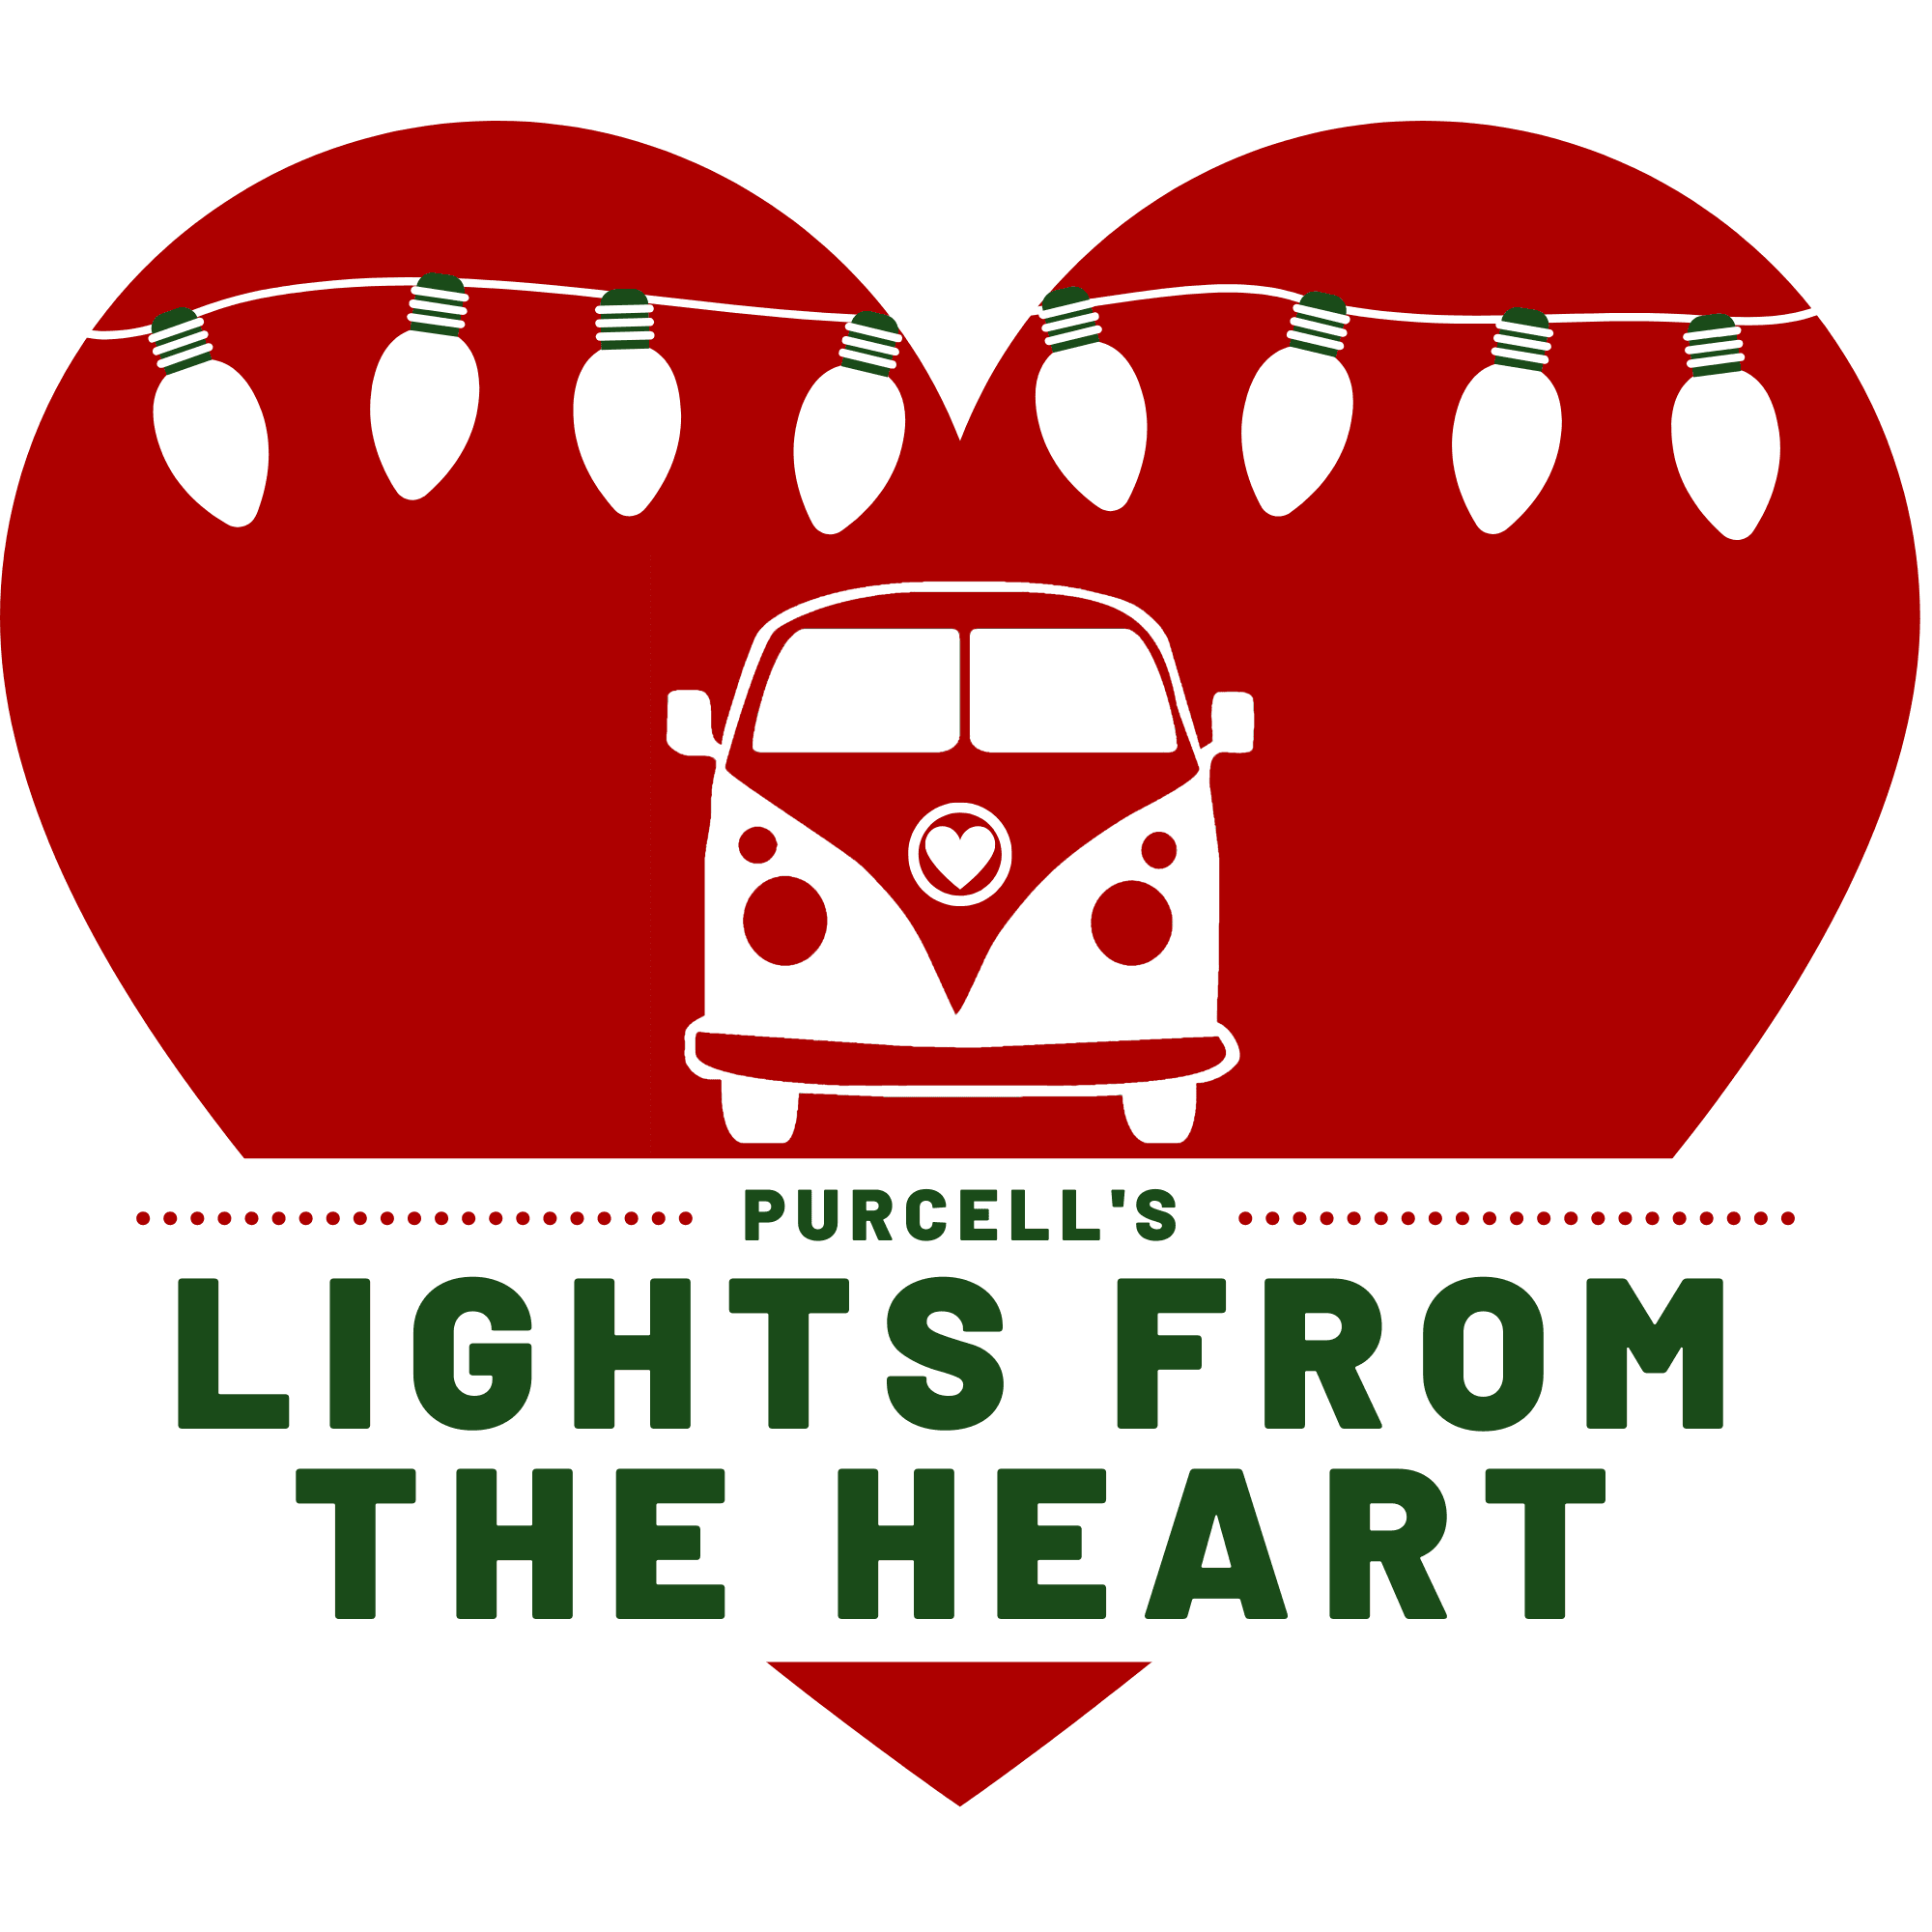 PURCELLS LIGHTS FROM THE HEART LOGO 2020